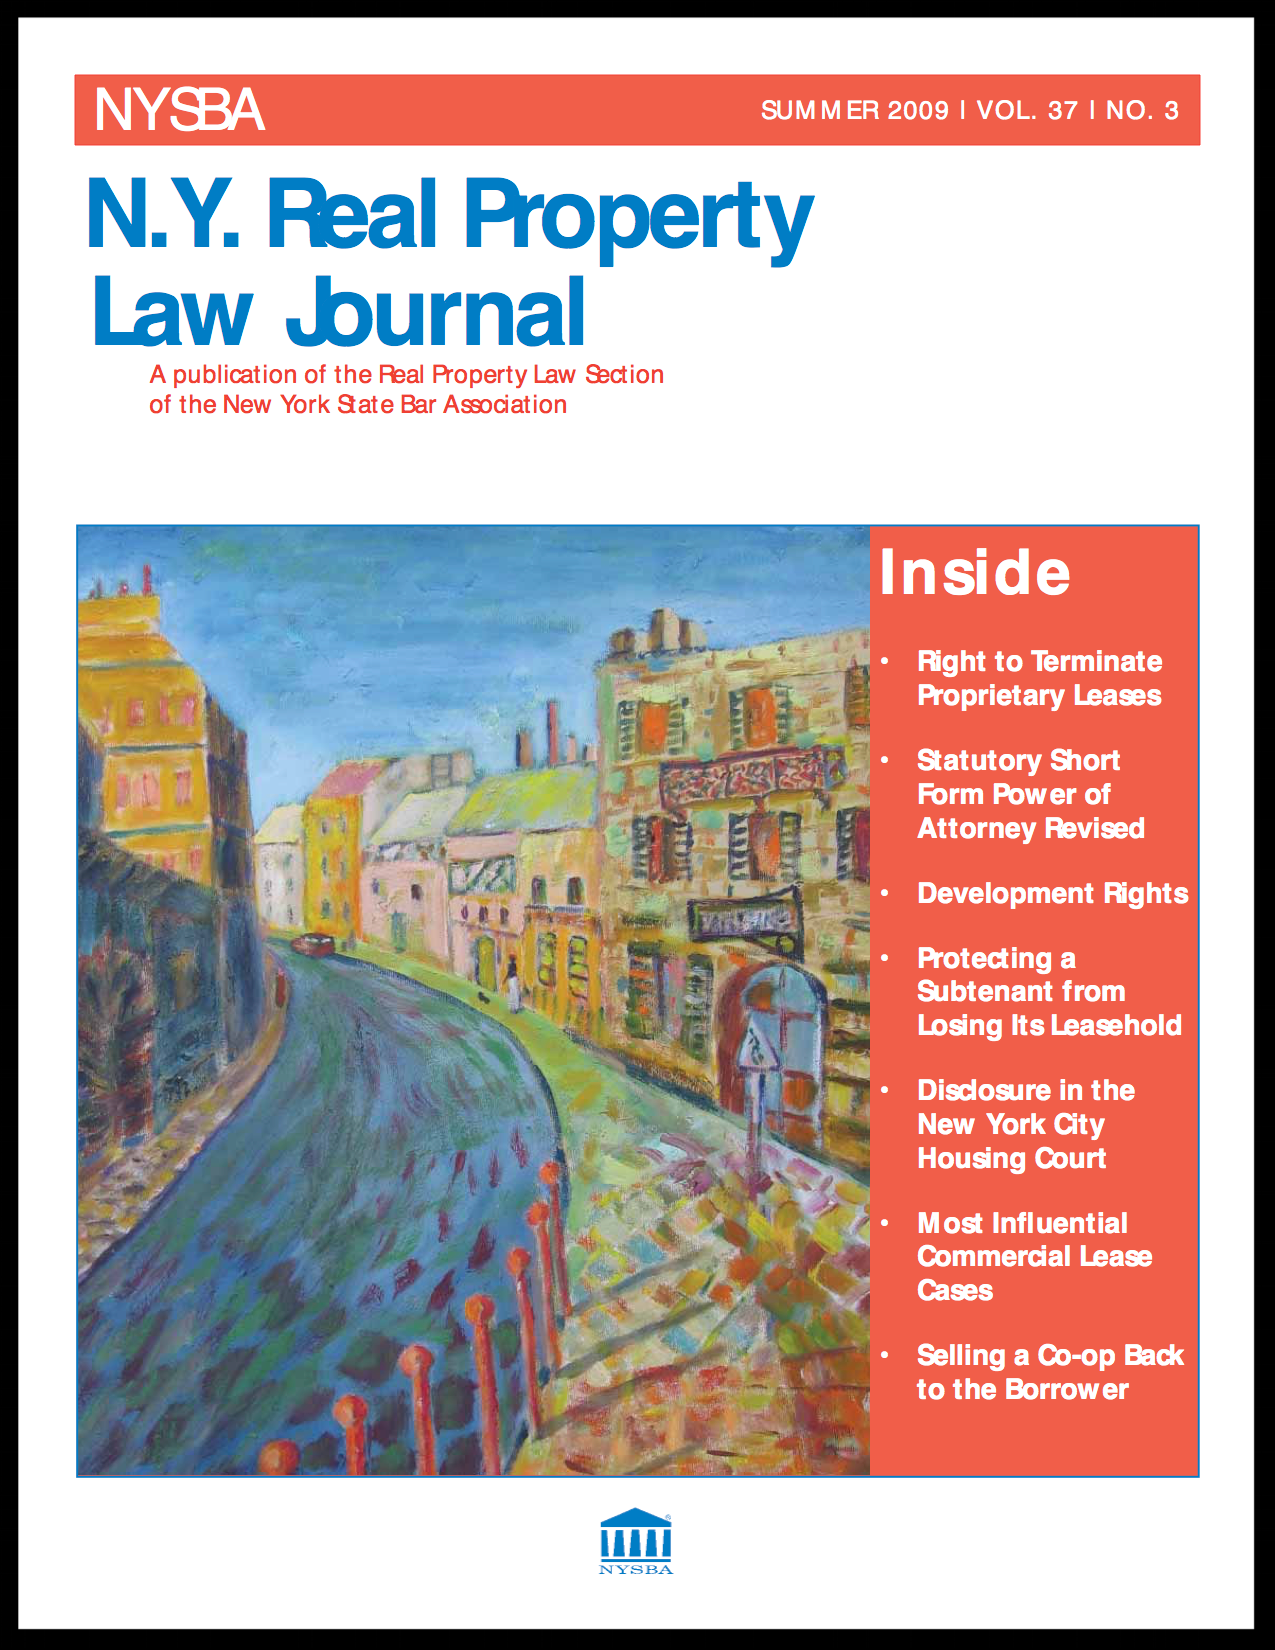 2009-NY-Real-Property-Law-Journal-Development-Rights-Purchases-by-ZLM-in-NYC.png